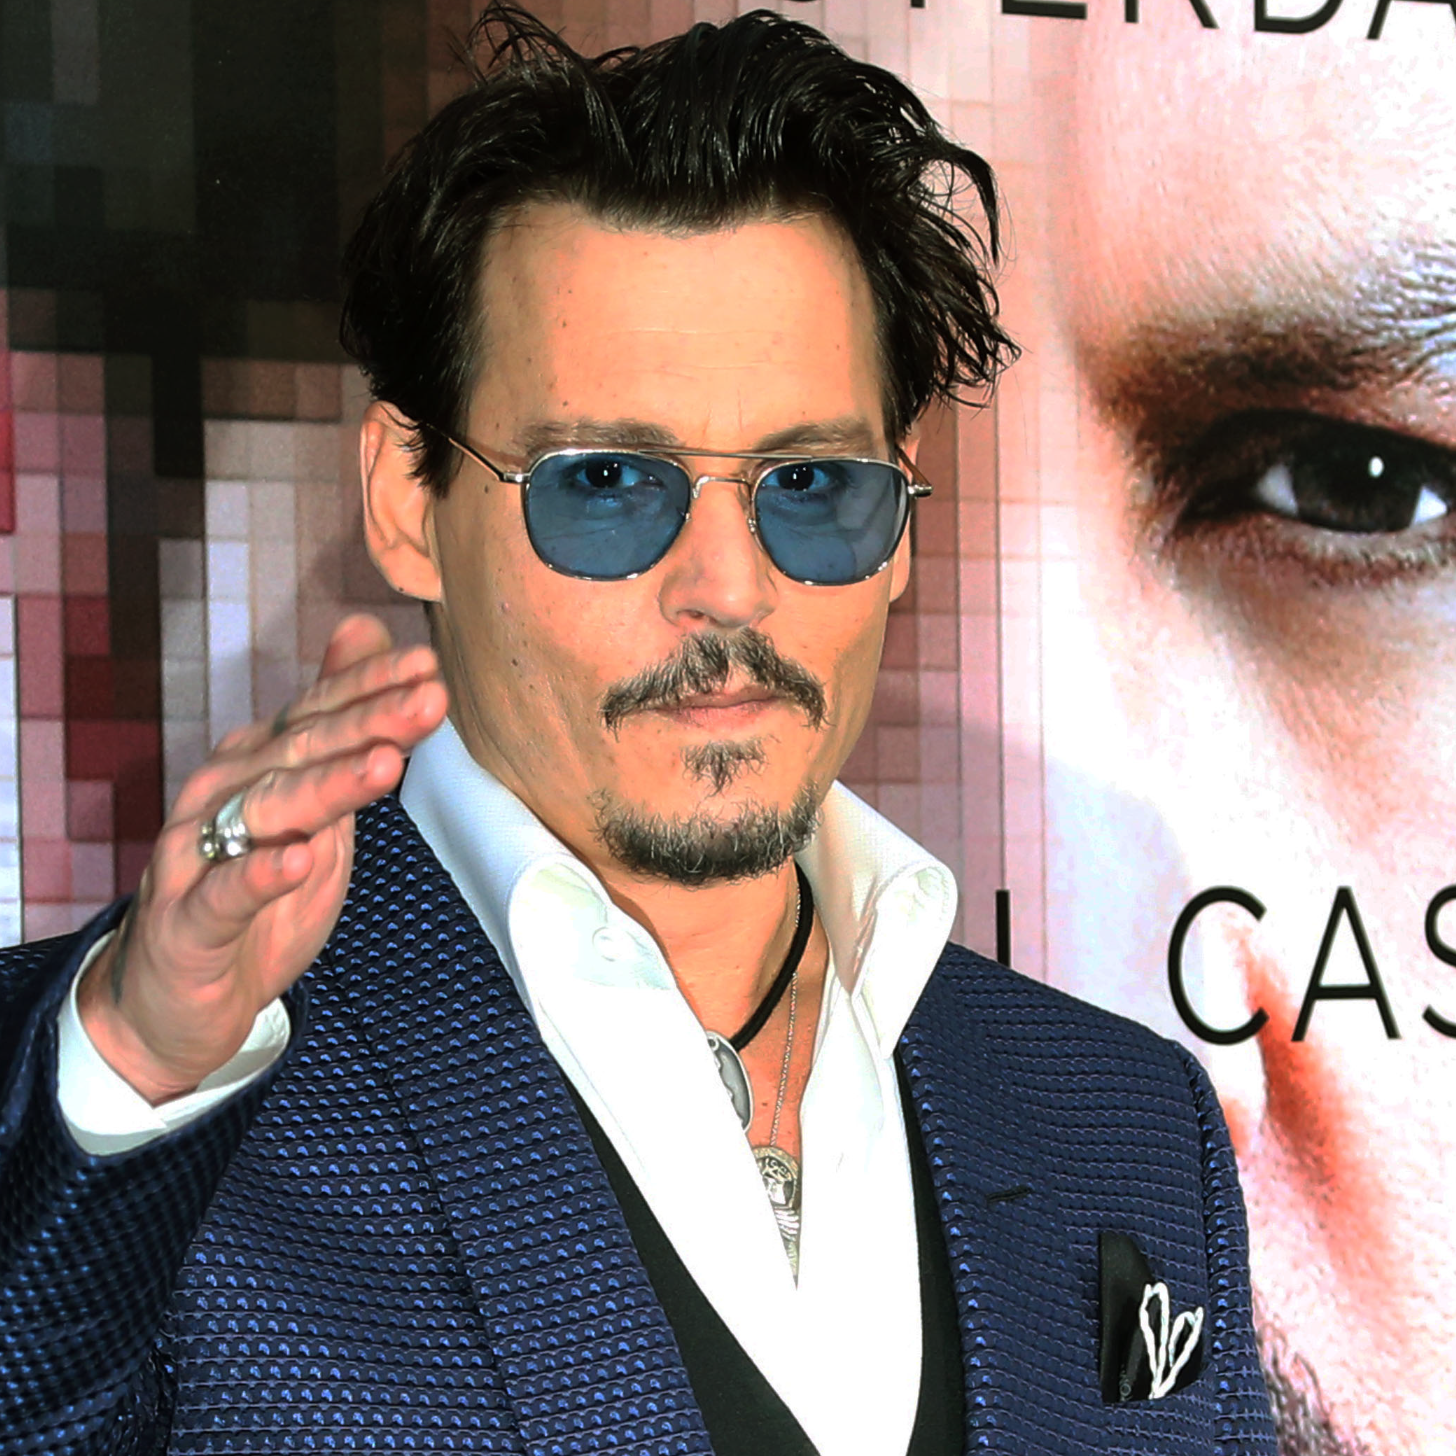 Johnny Depp: Johnny Depp At The Transcendence Premiere